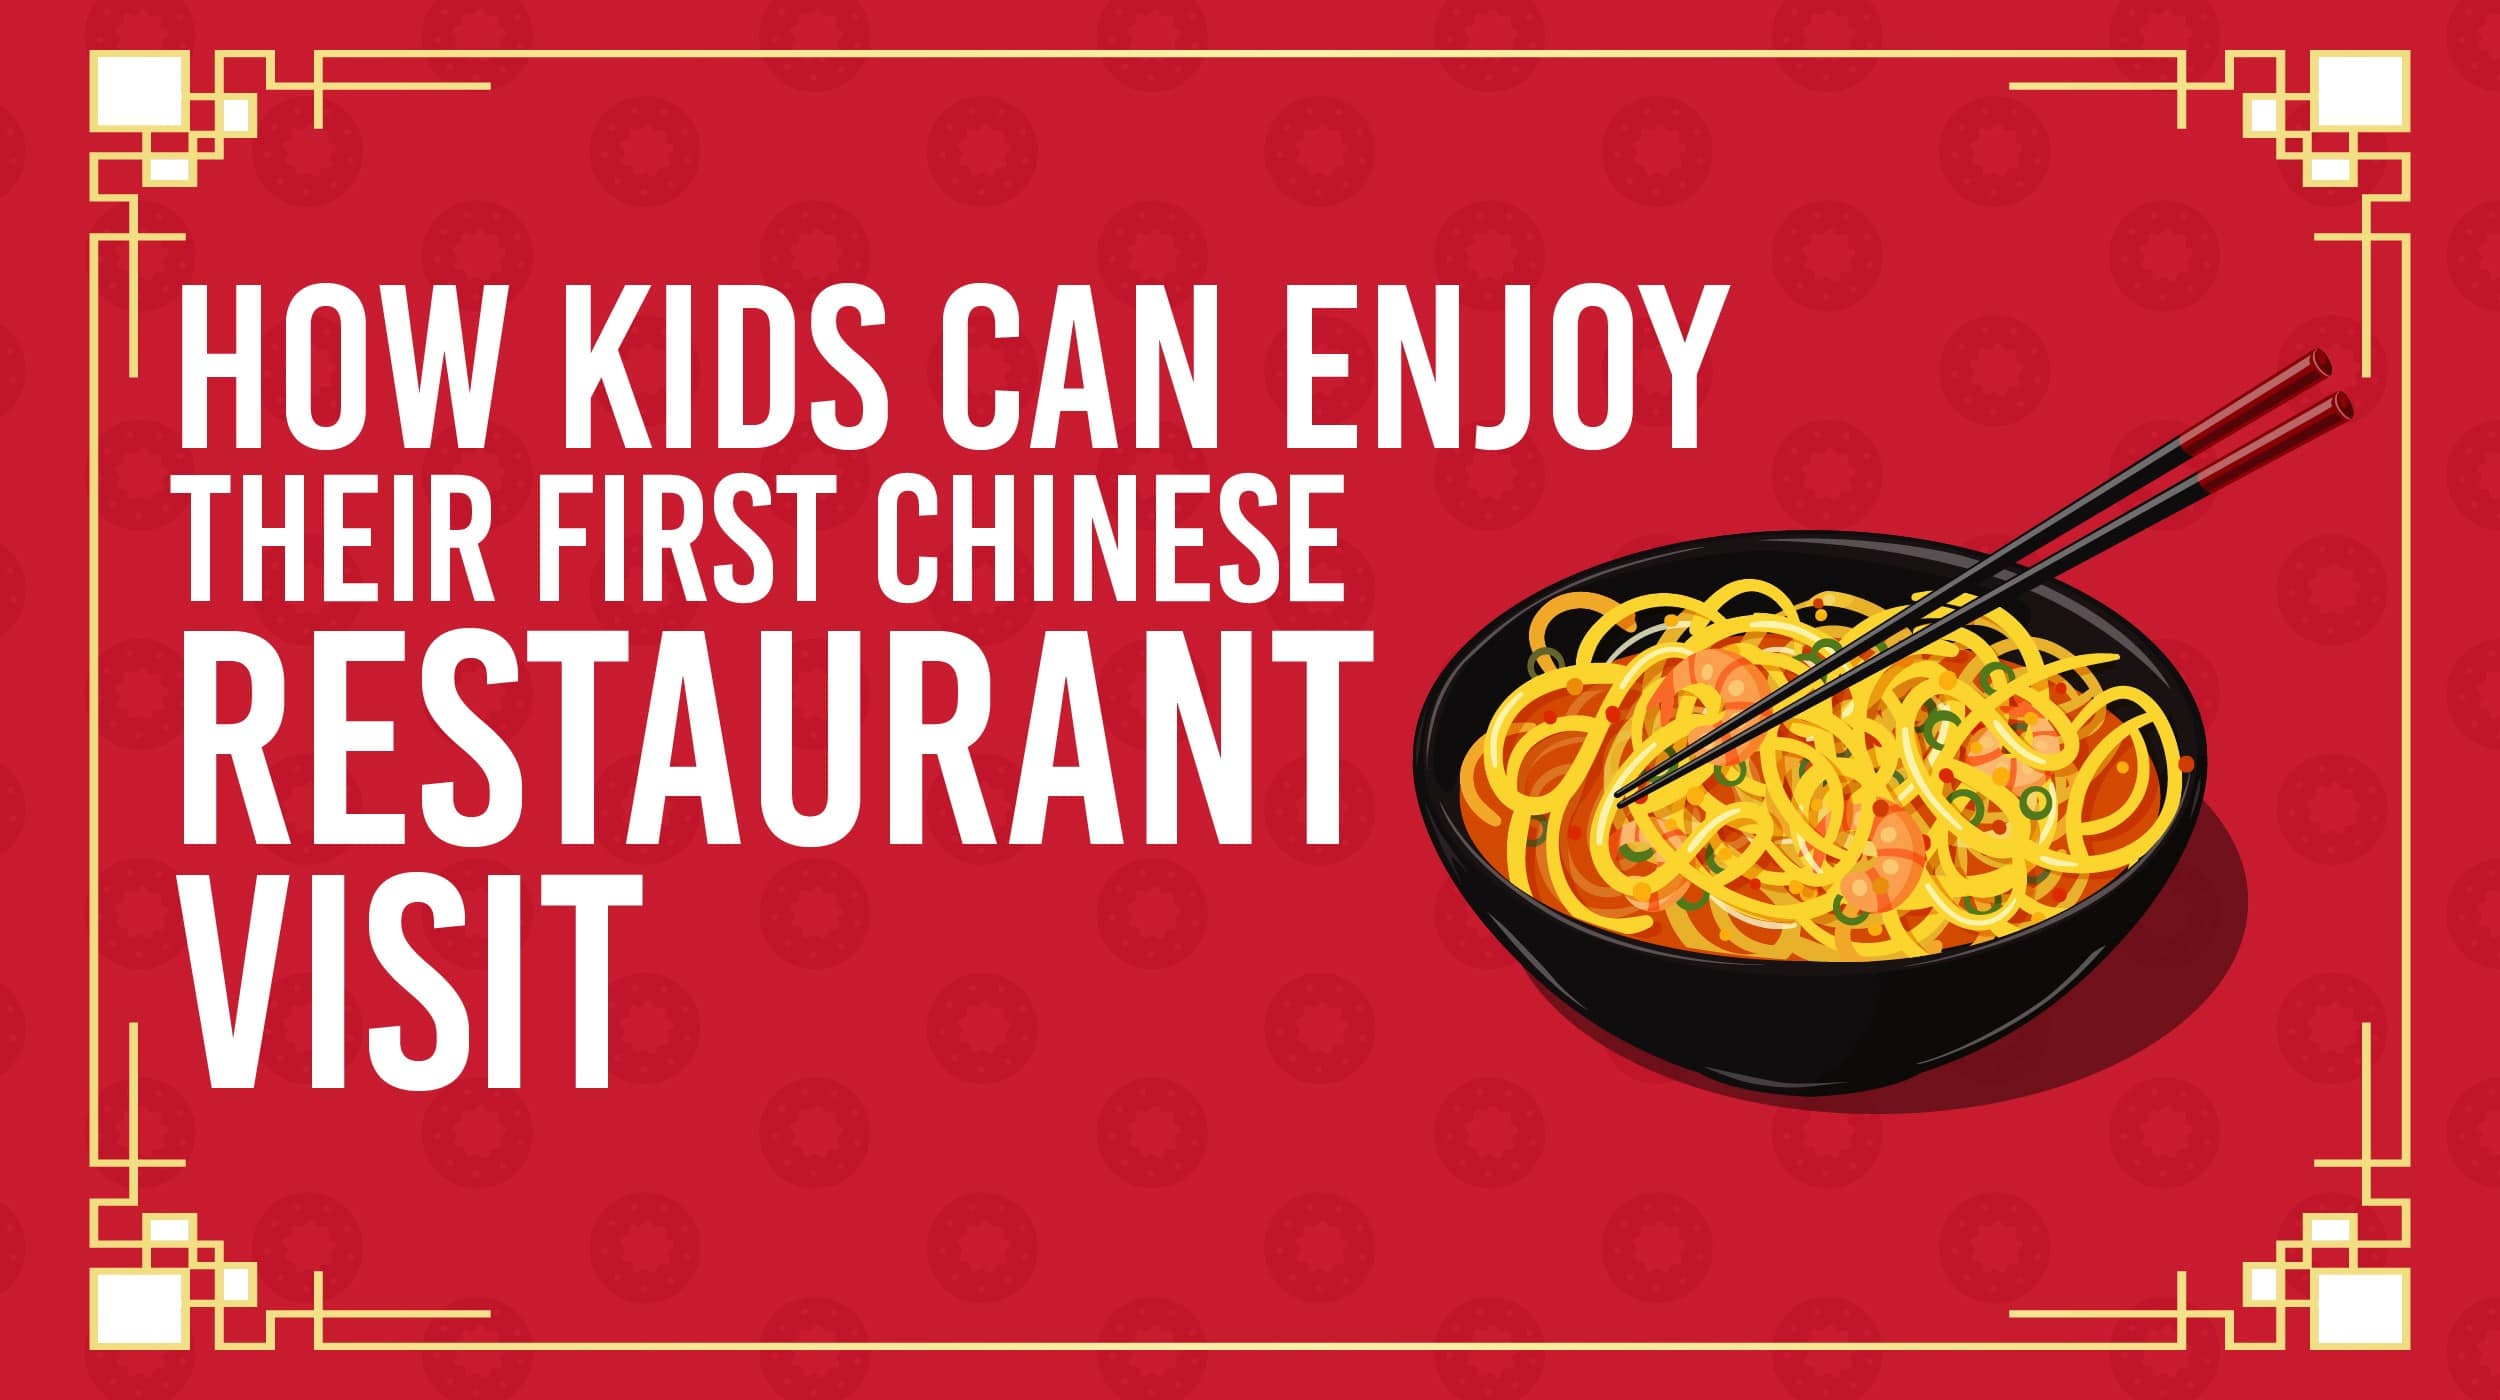 how kids can enjoy their first chinese restaurant visit